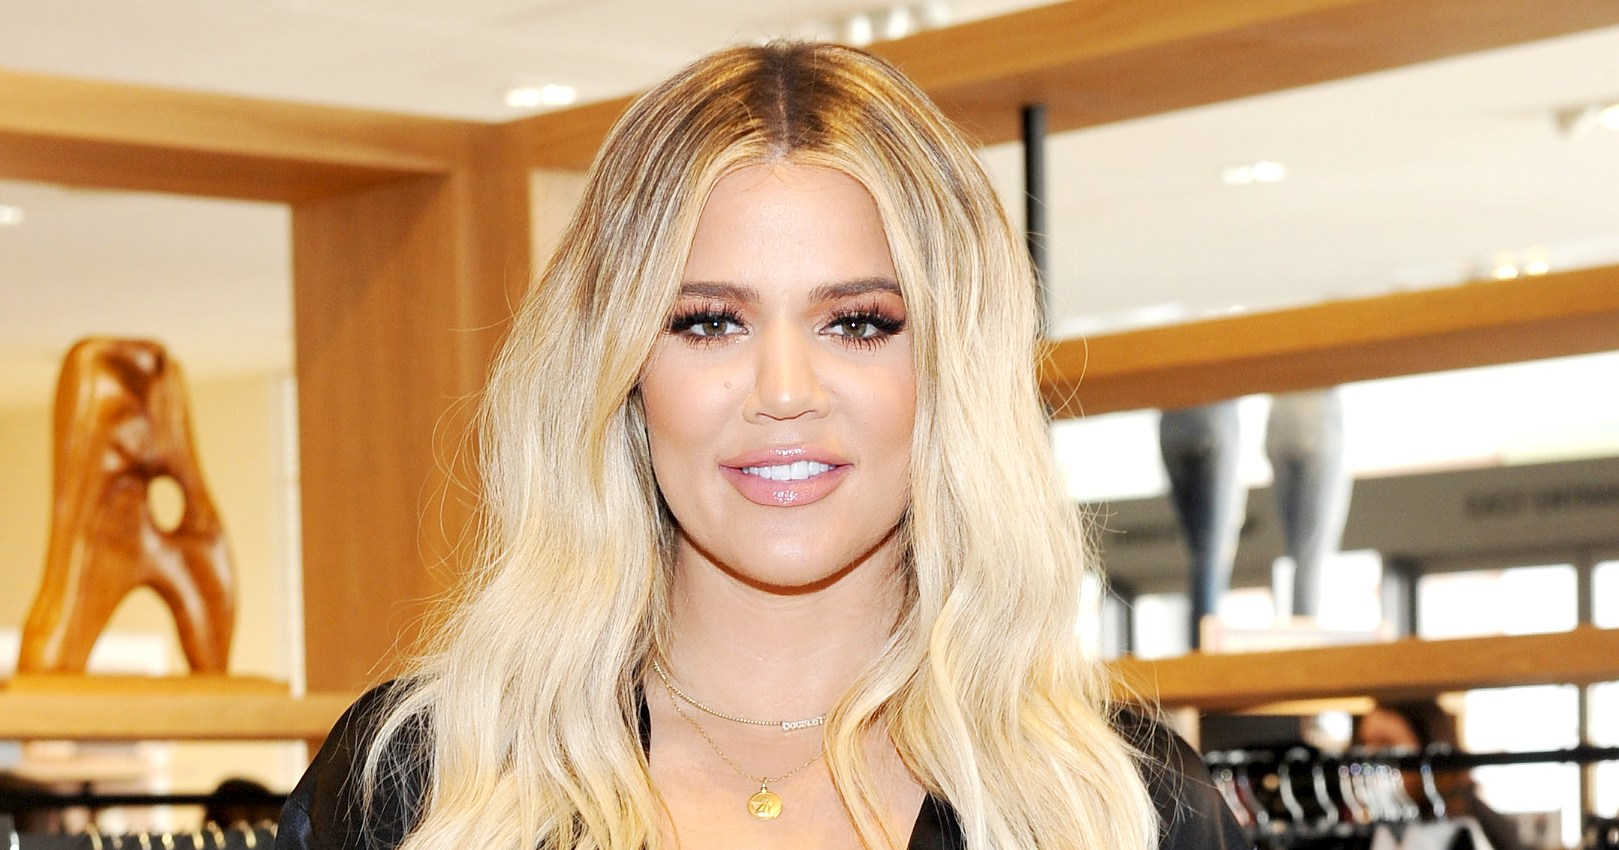 Khloe Kardashian Says True's Future's 'So Bright' After Scandal